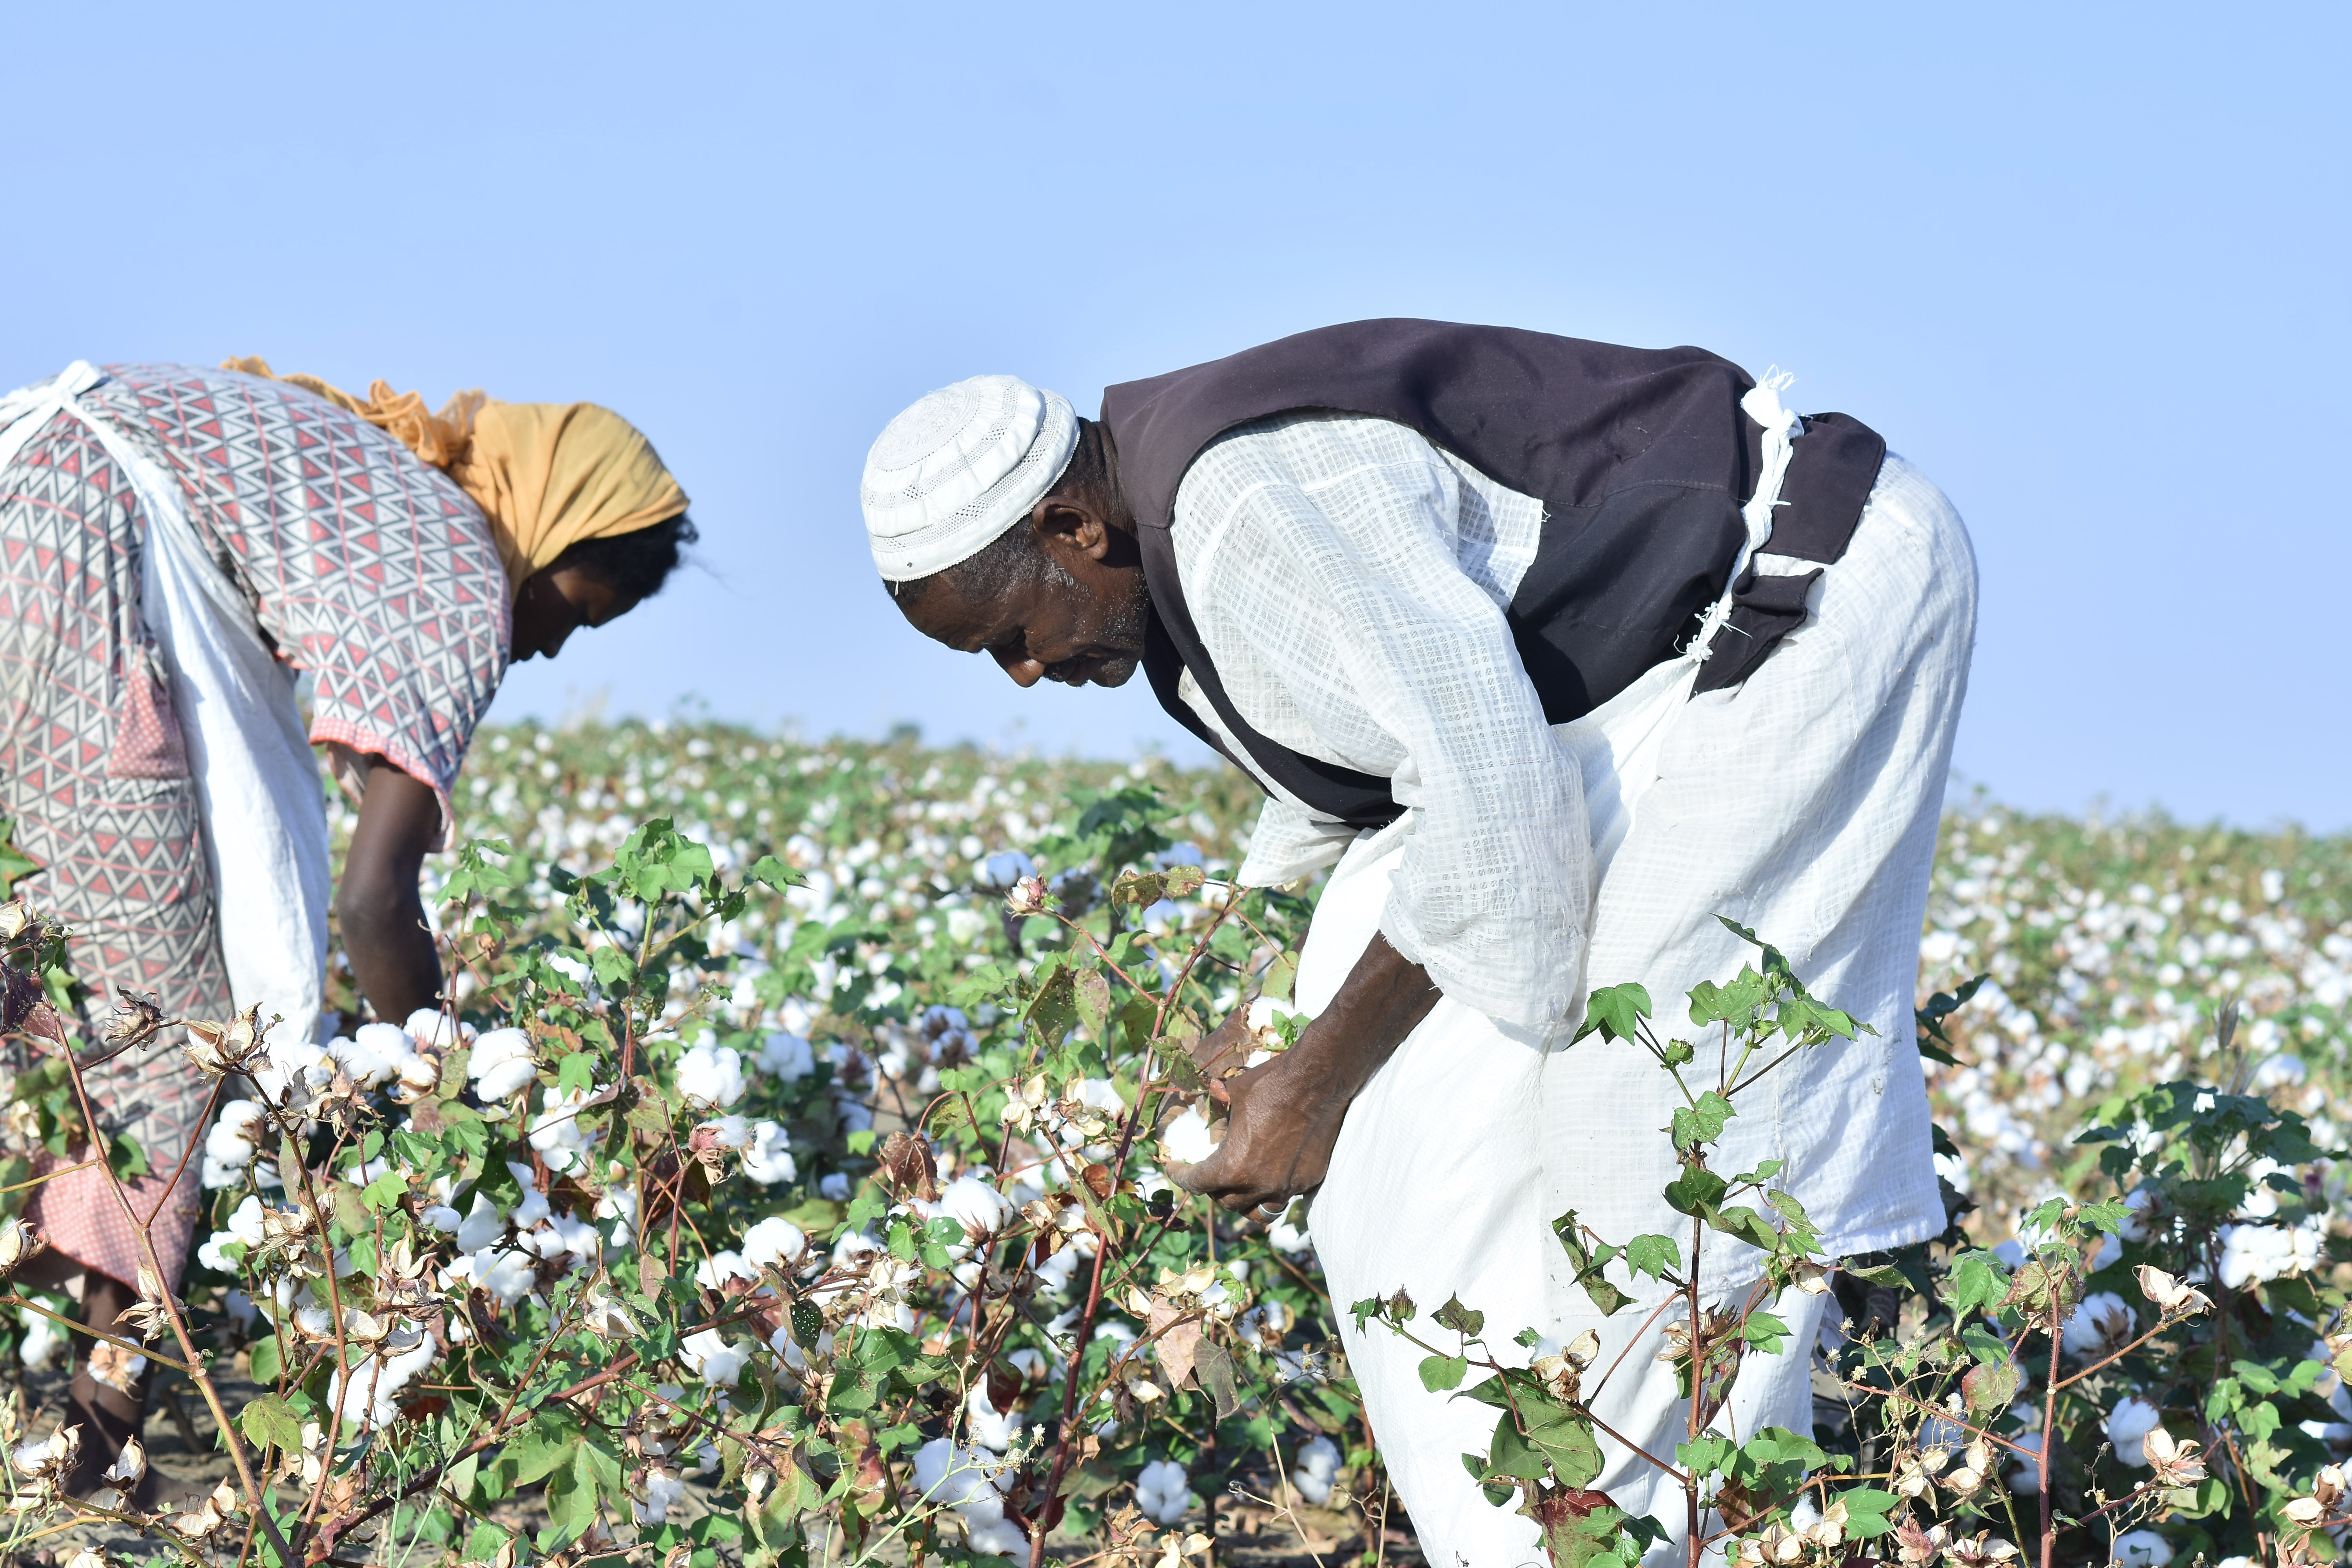 karkoug Agricultural Project – Cotton Harvesting